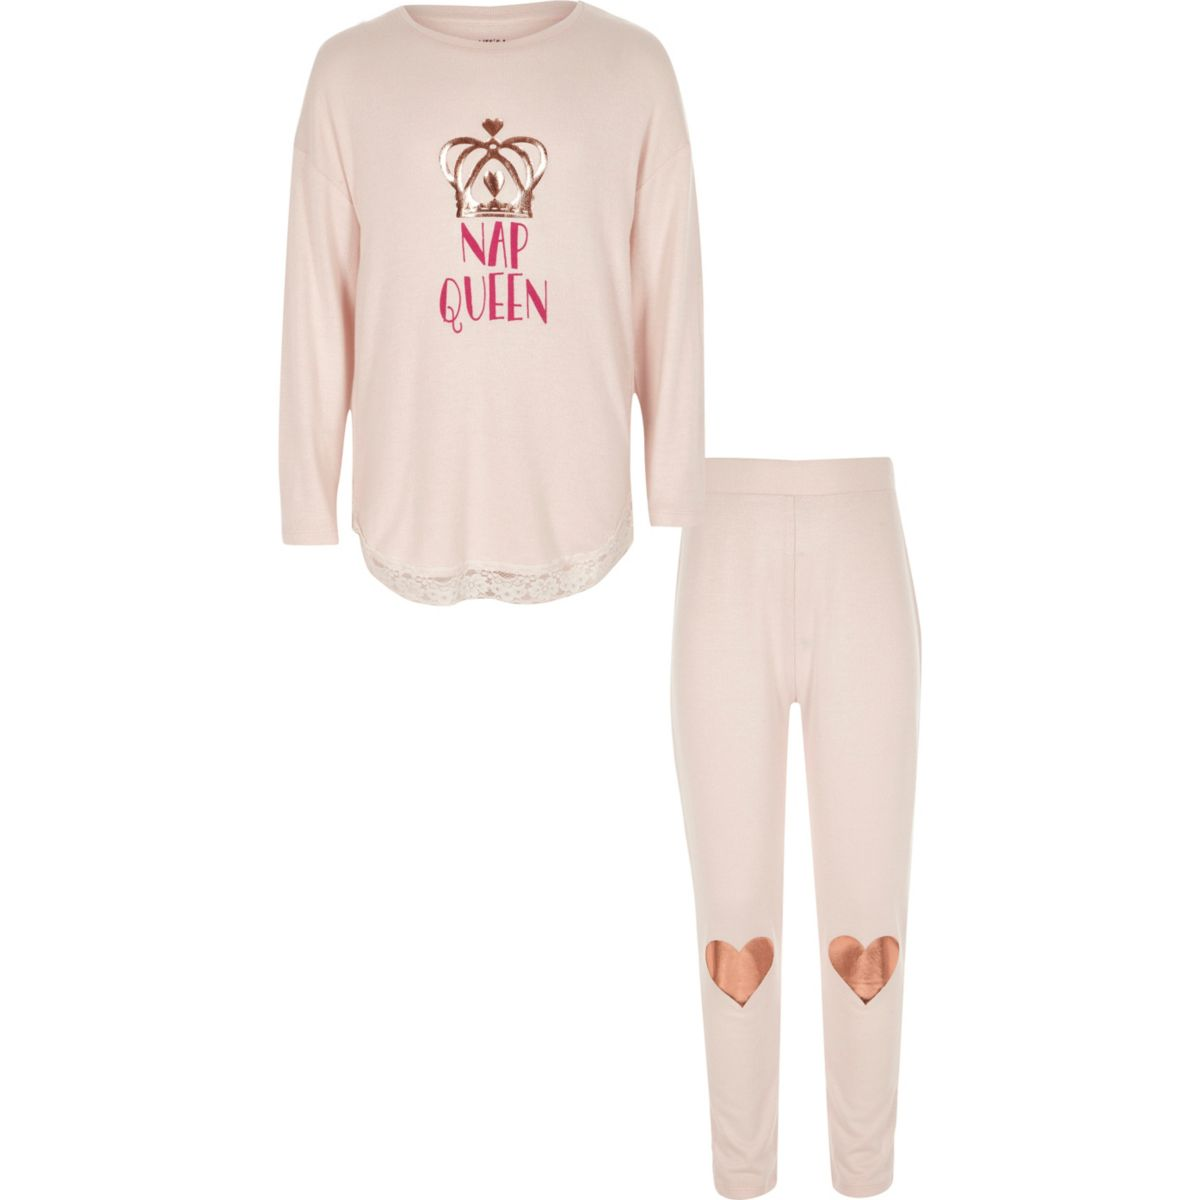 River Island Kids Girls pink and rose gold nap queen PJs